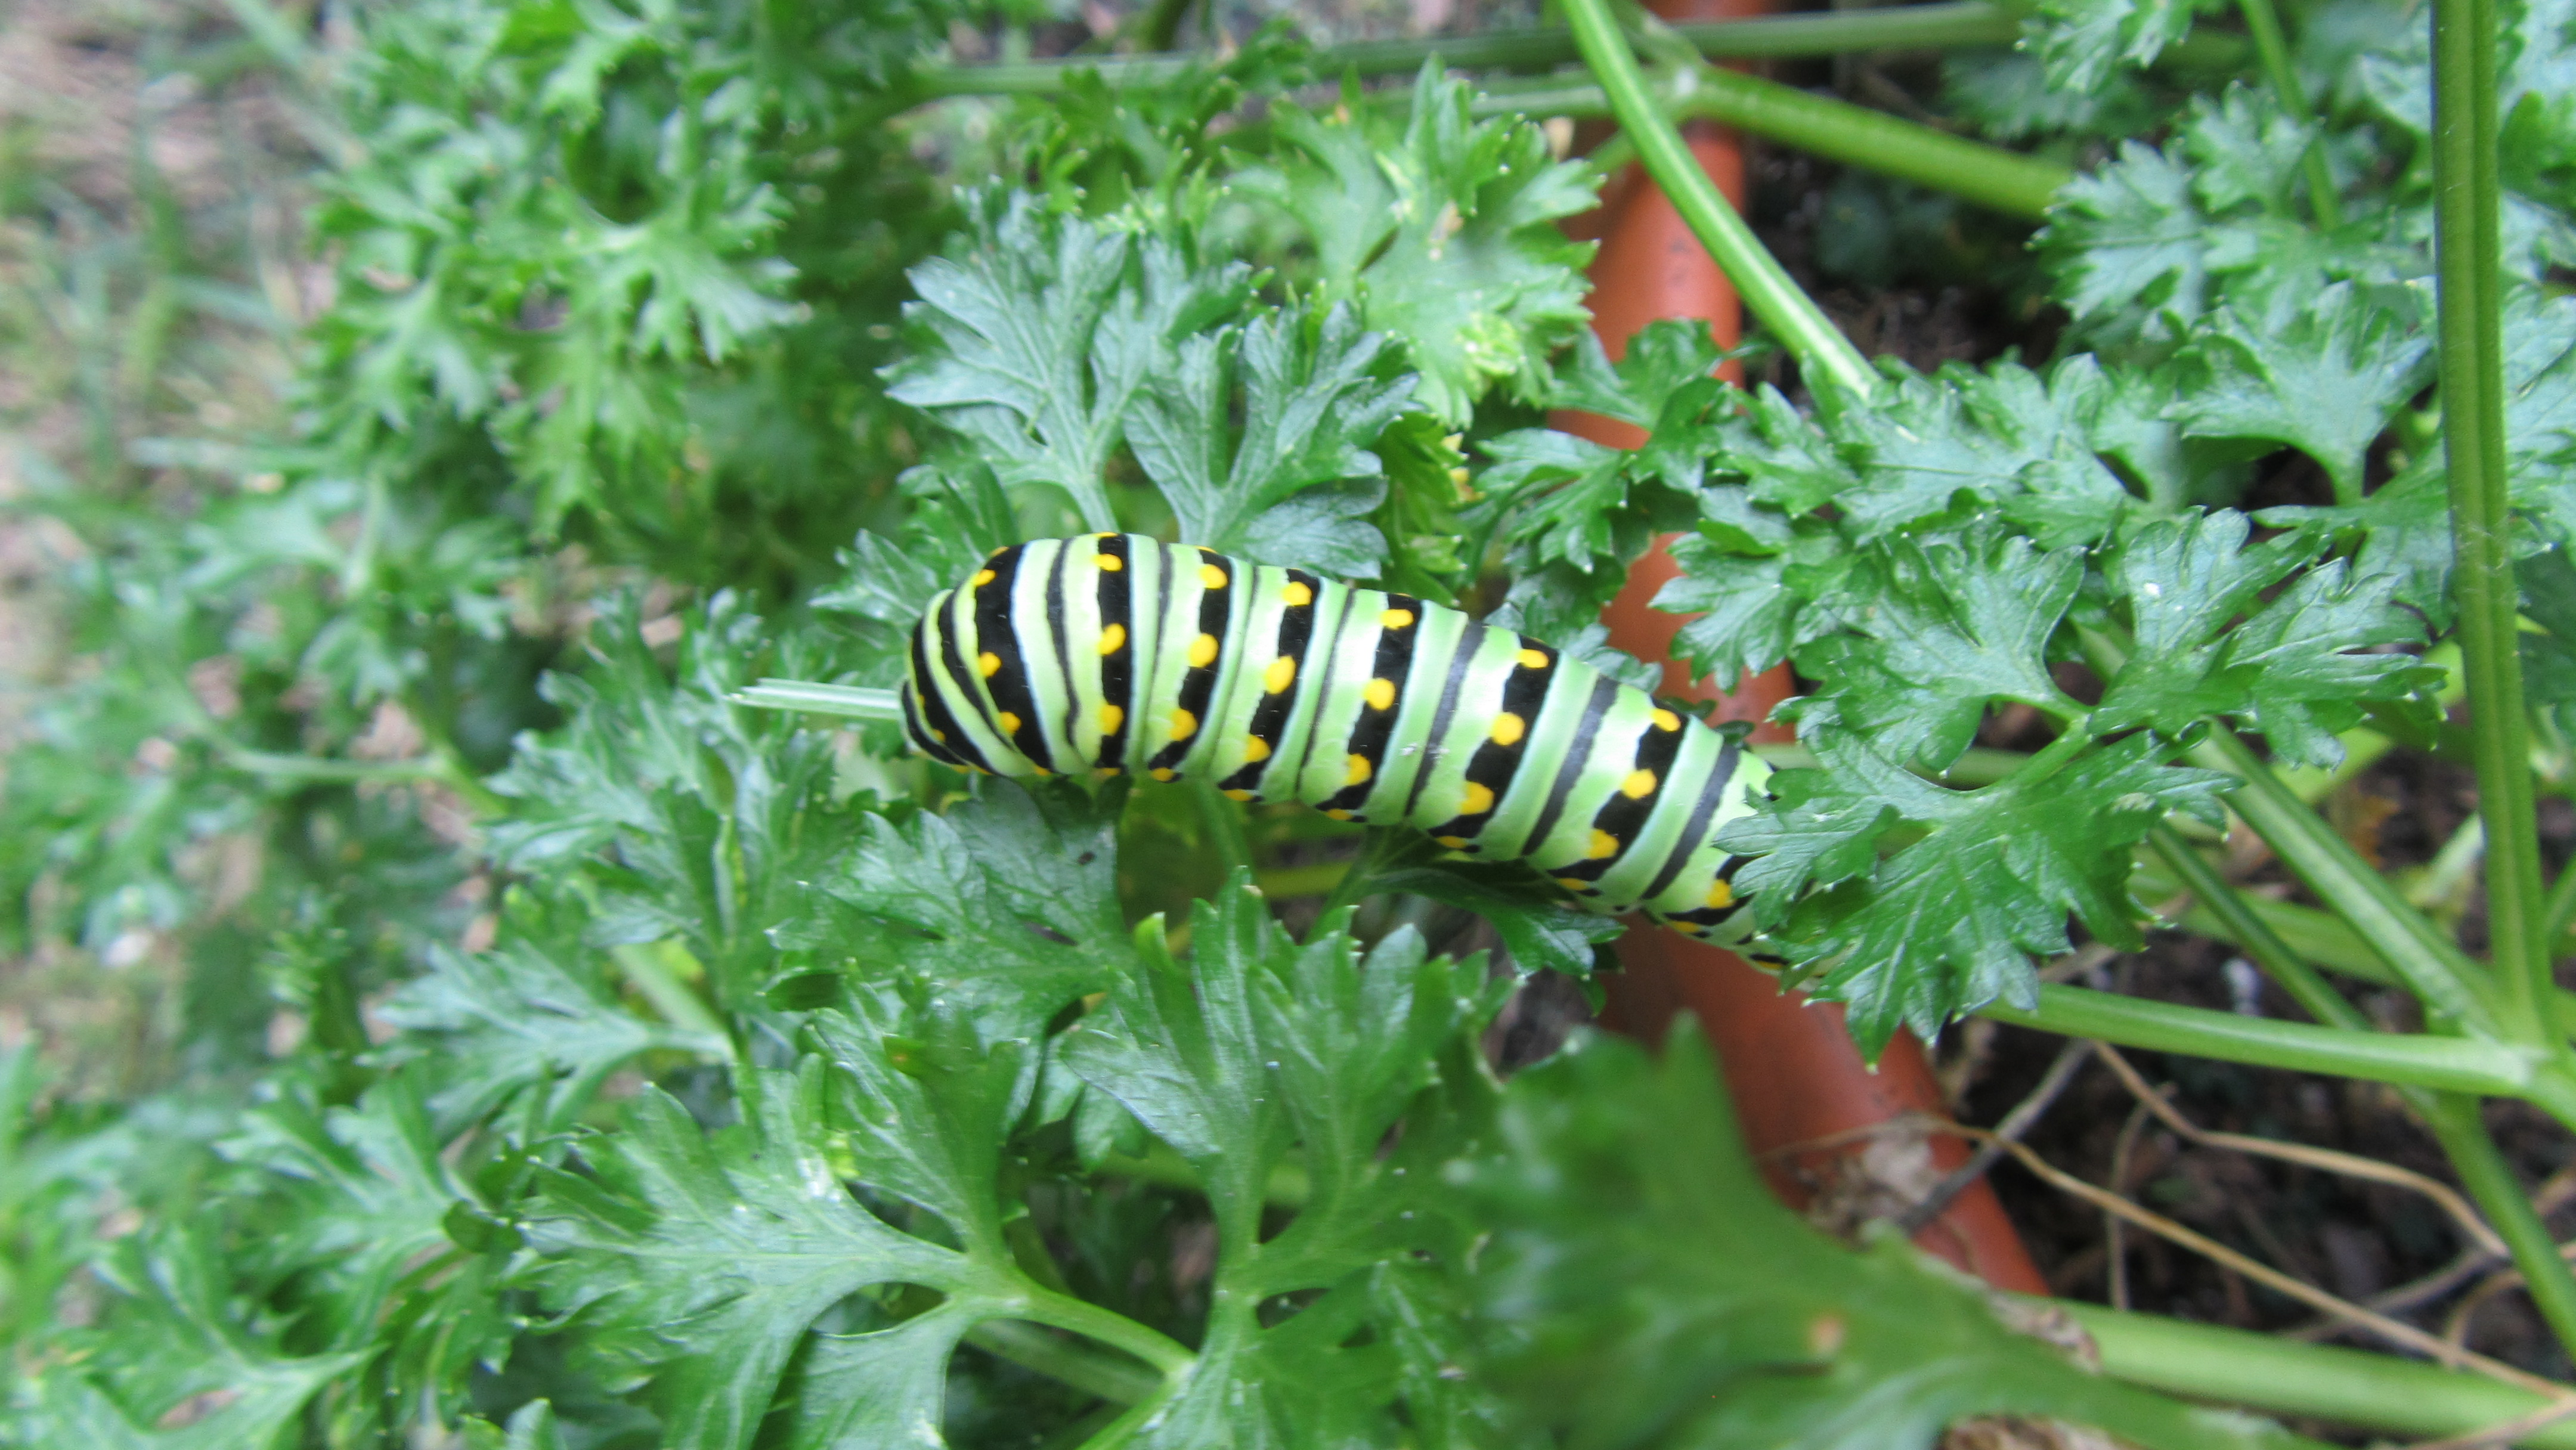 Swallowtail caterpillar in parsley on Chicago's Northwest Side. Credit: Ron Wozny